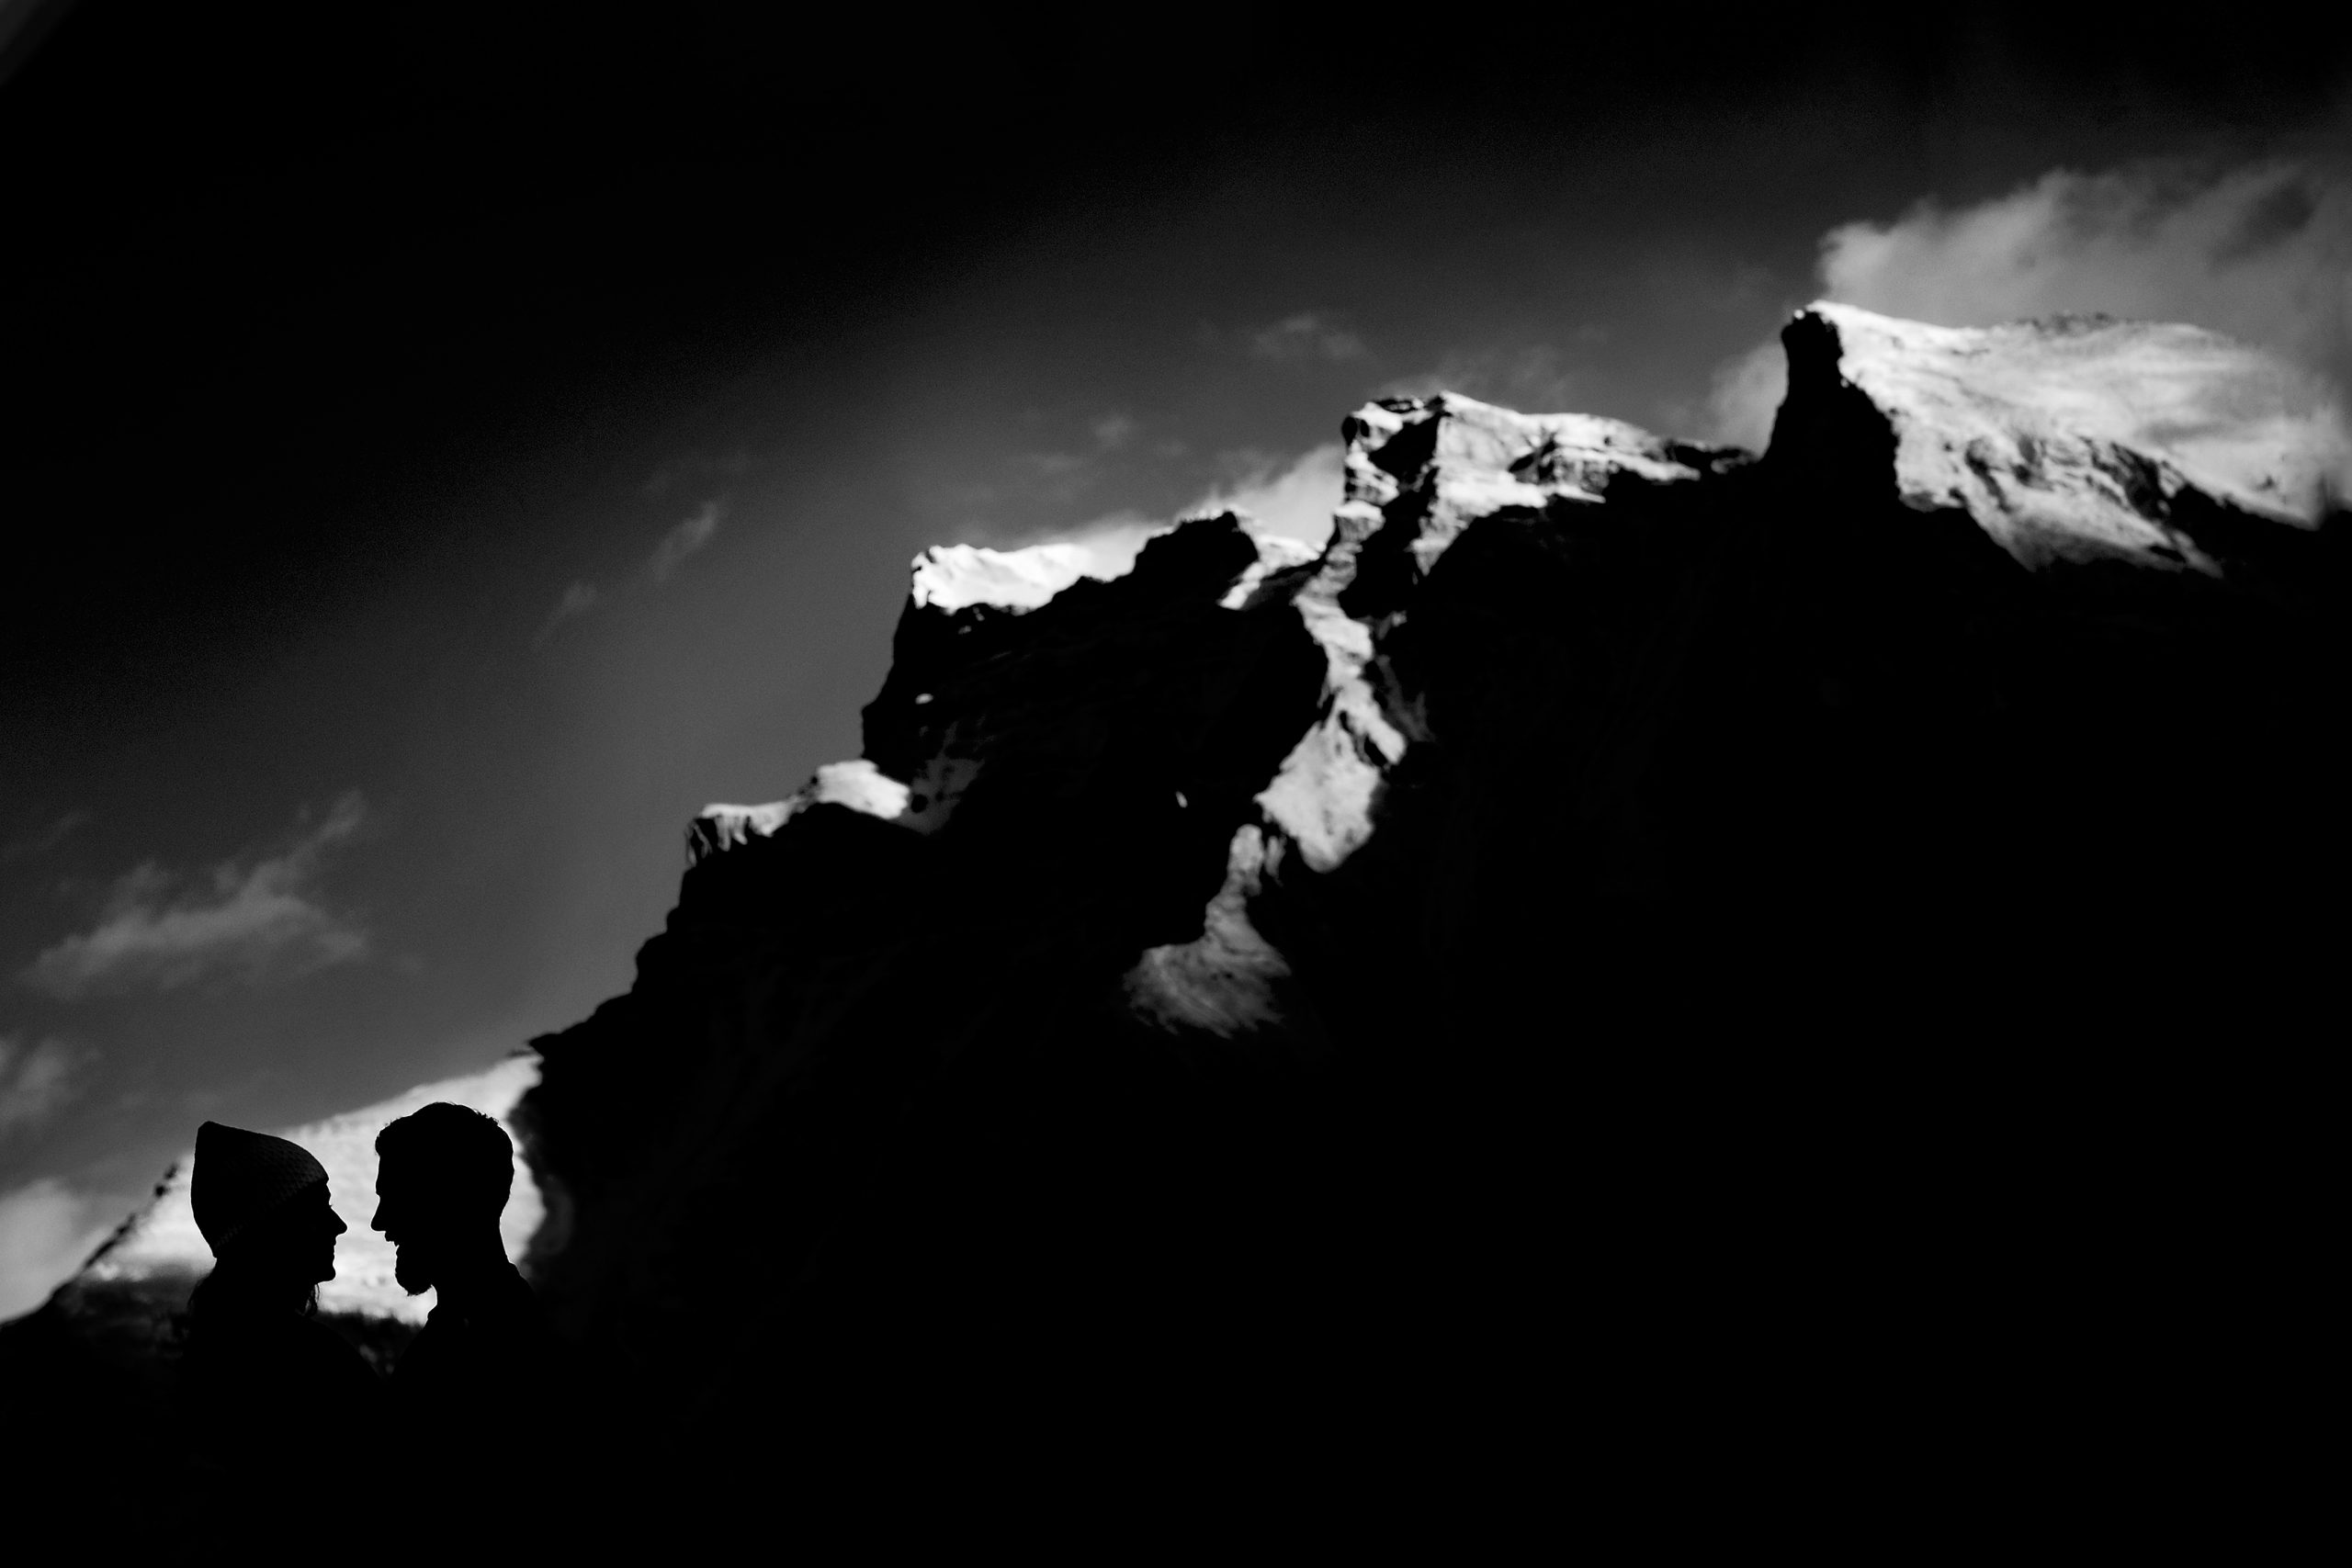 A silhouette of a man and woman look into each other's eyes under the shadow of the Rocky Mountains